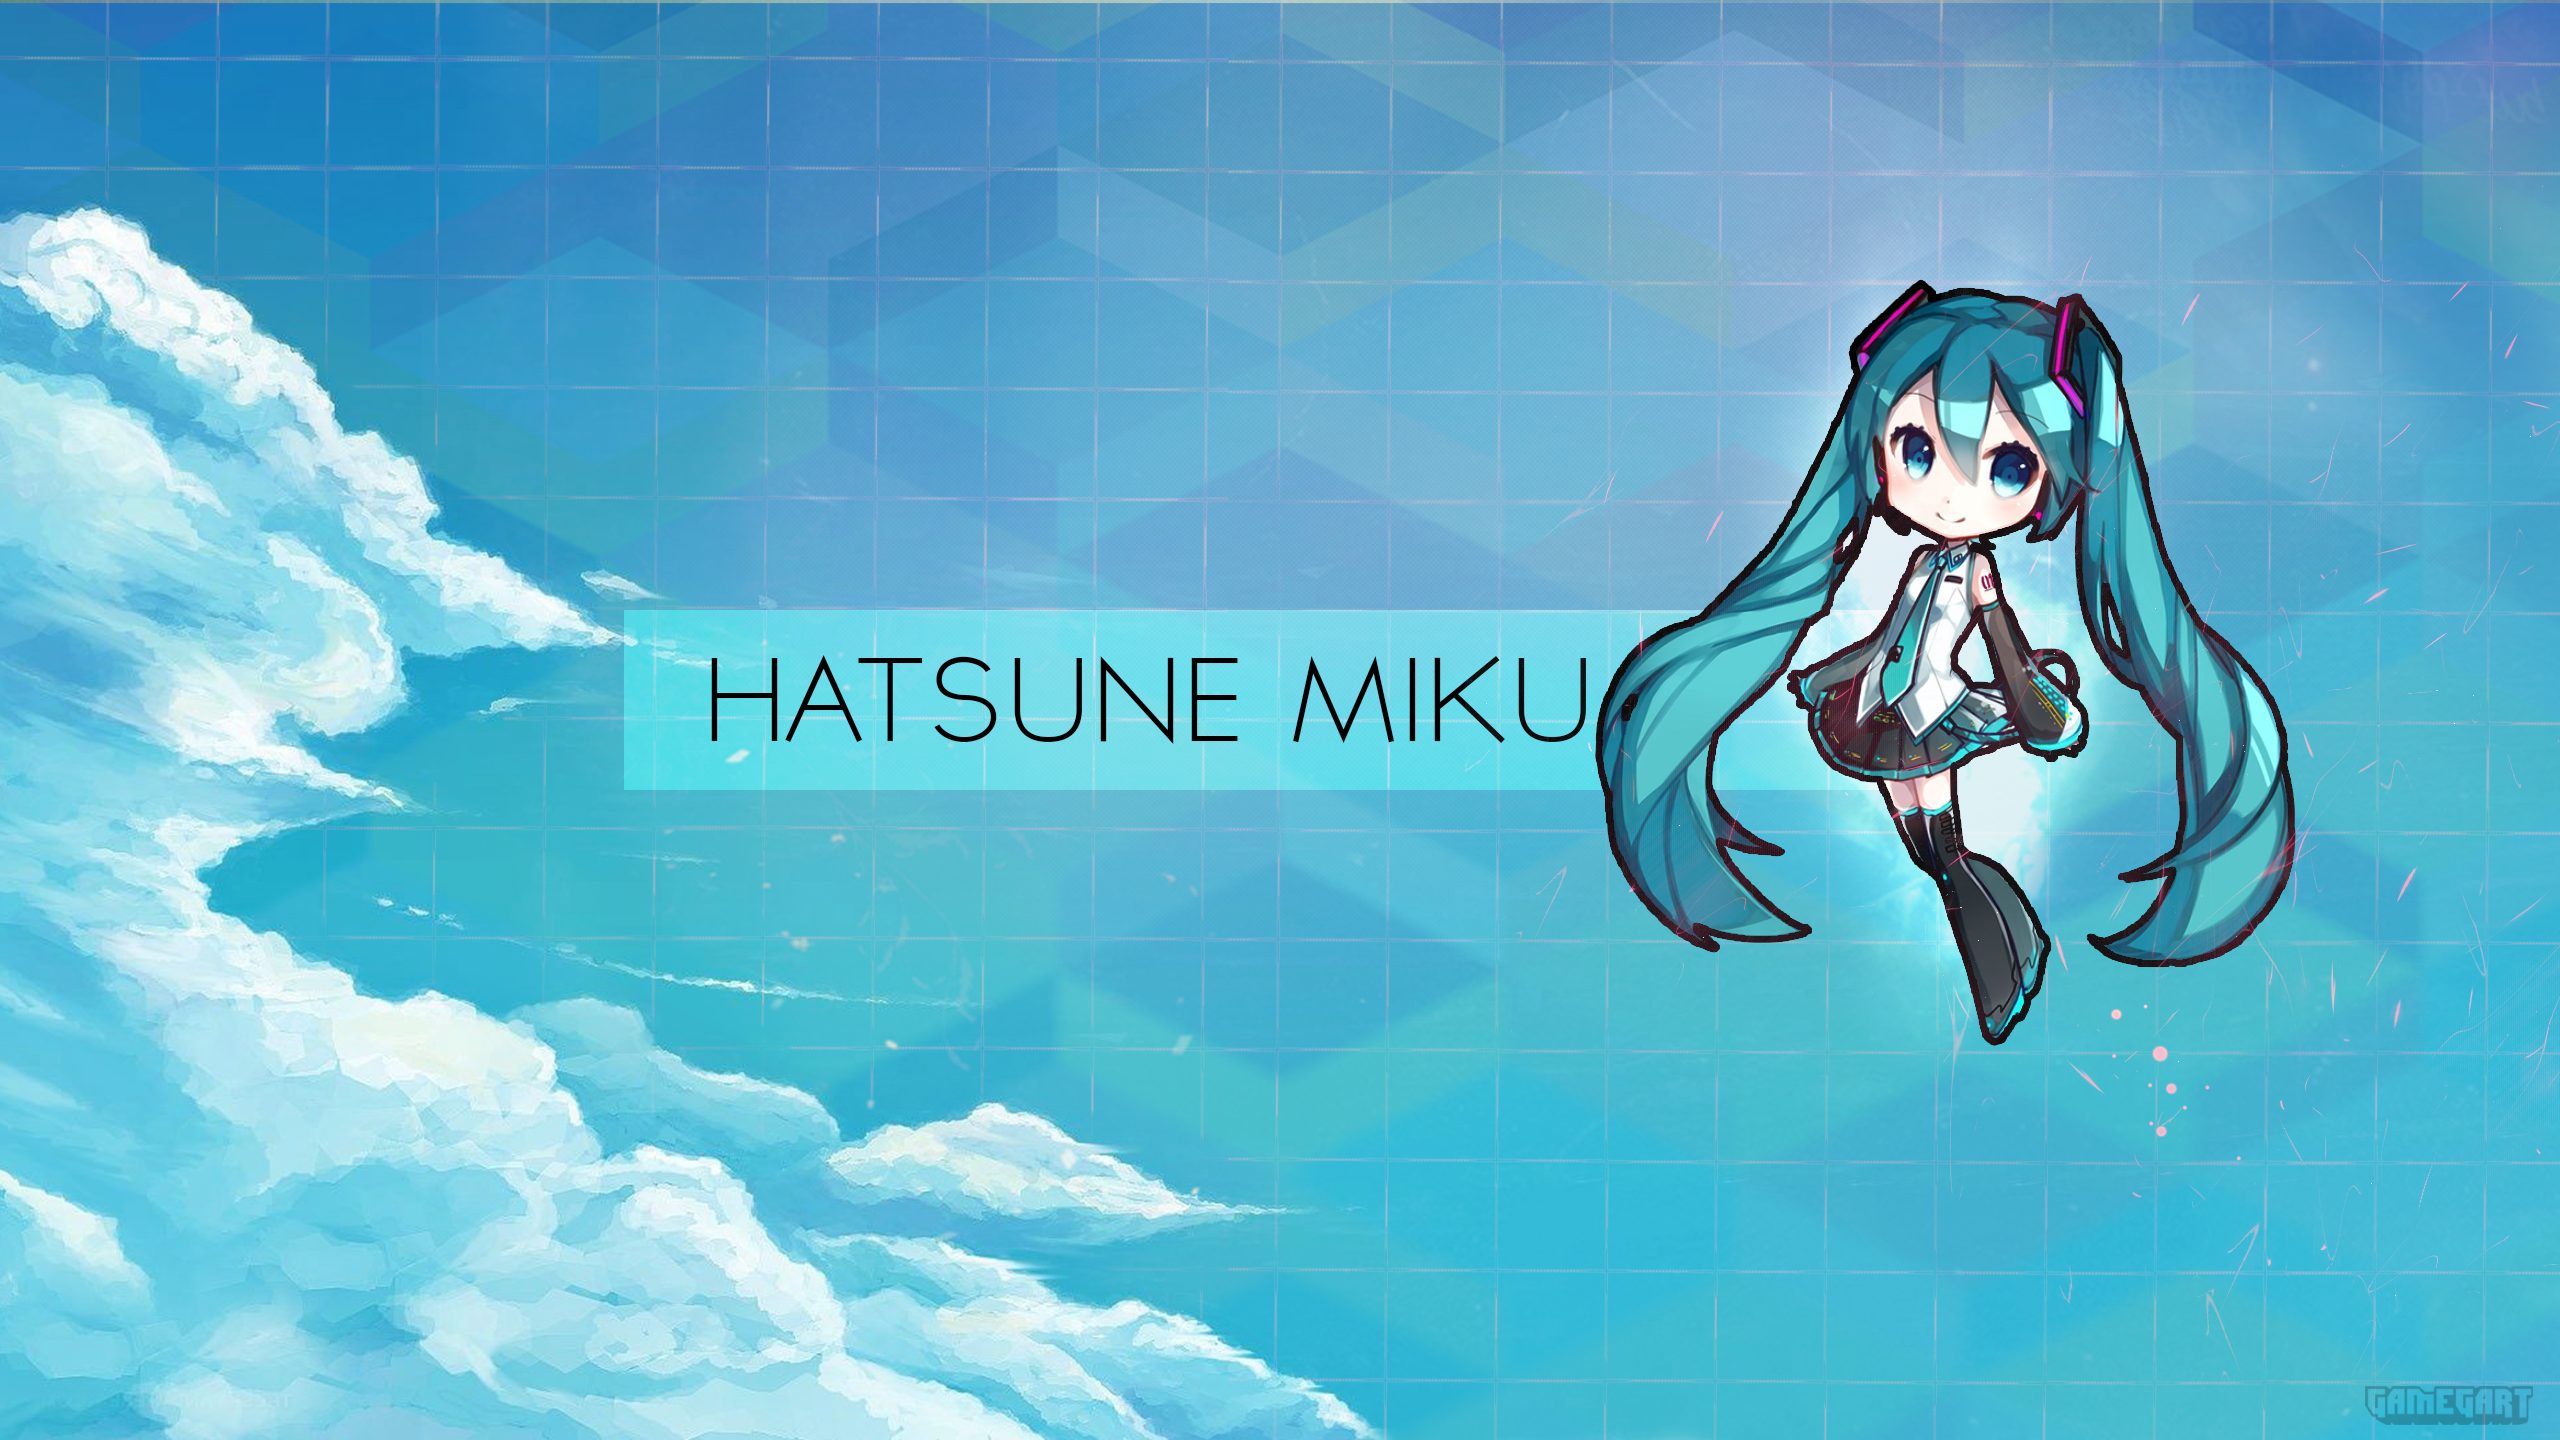 Hatsune Miku Chibi | Wallpaper by Gamegart on DeviantArt Hatsune Miku Chibi Wallpaper